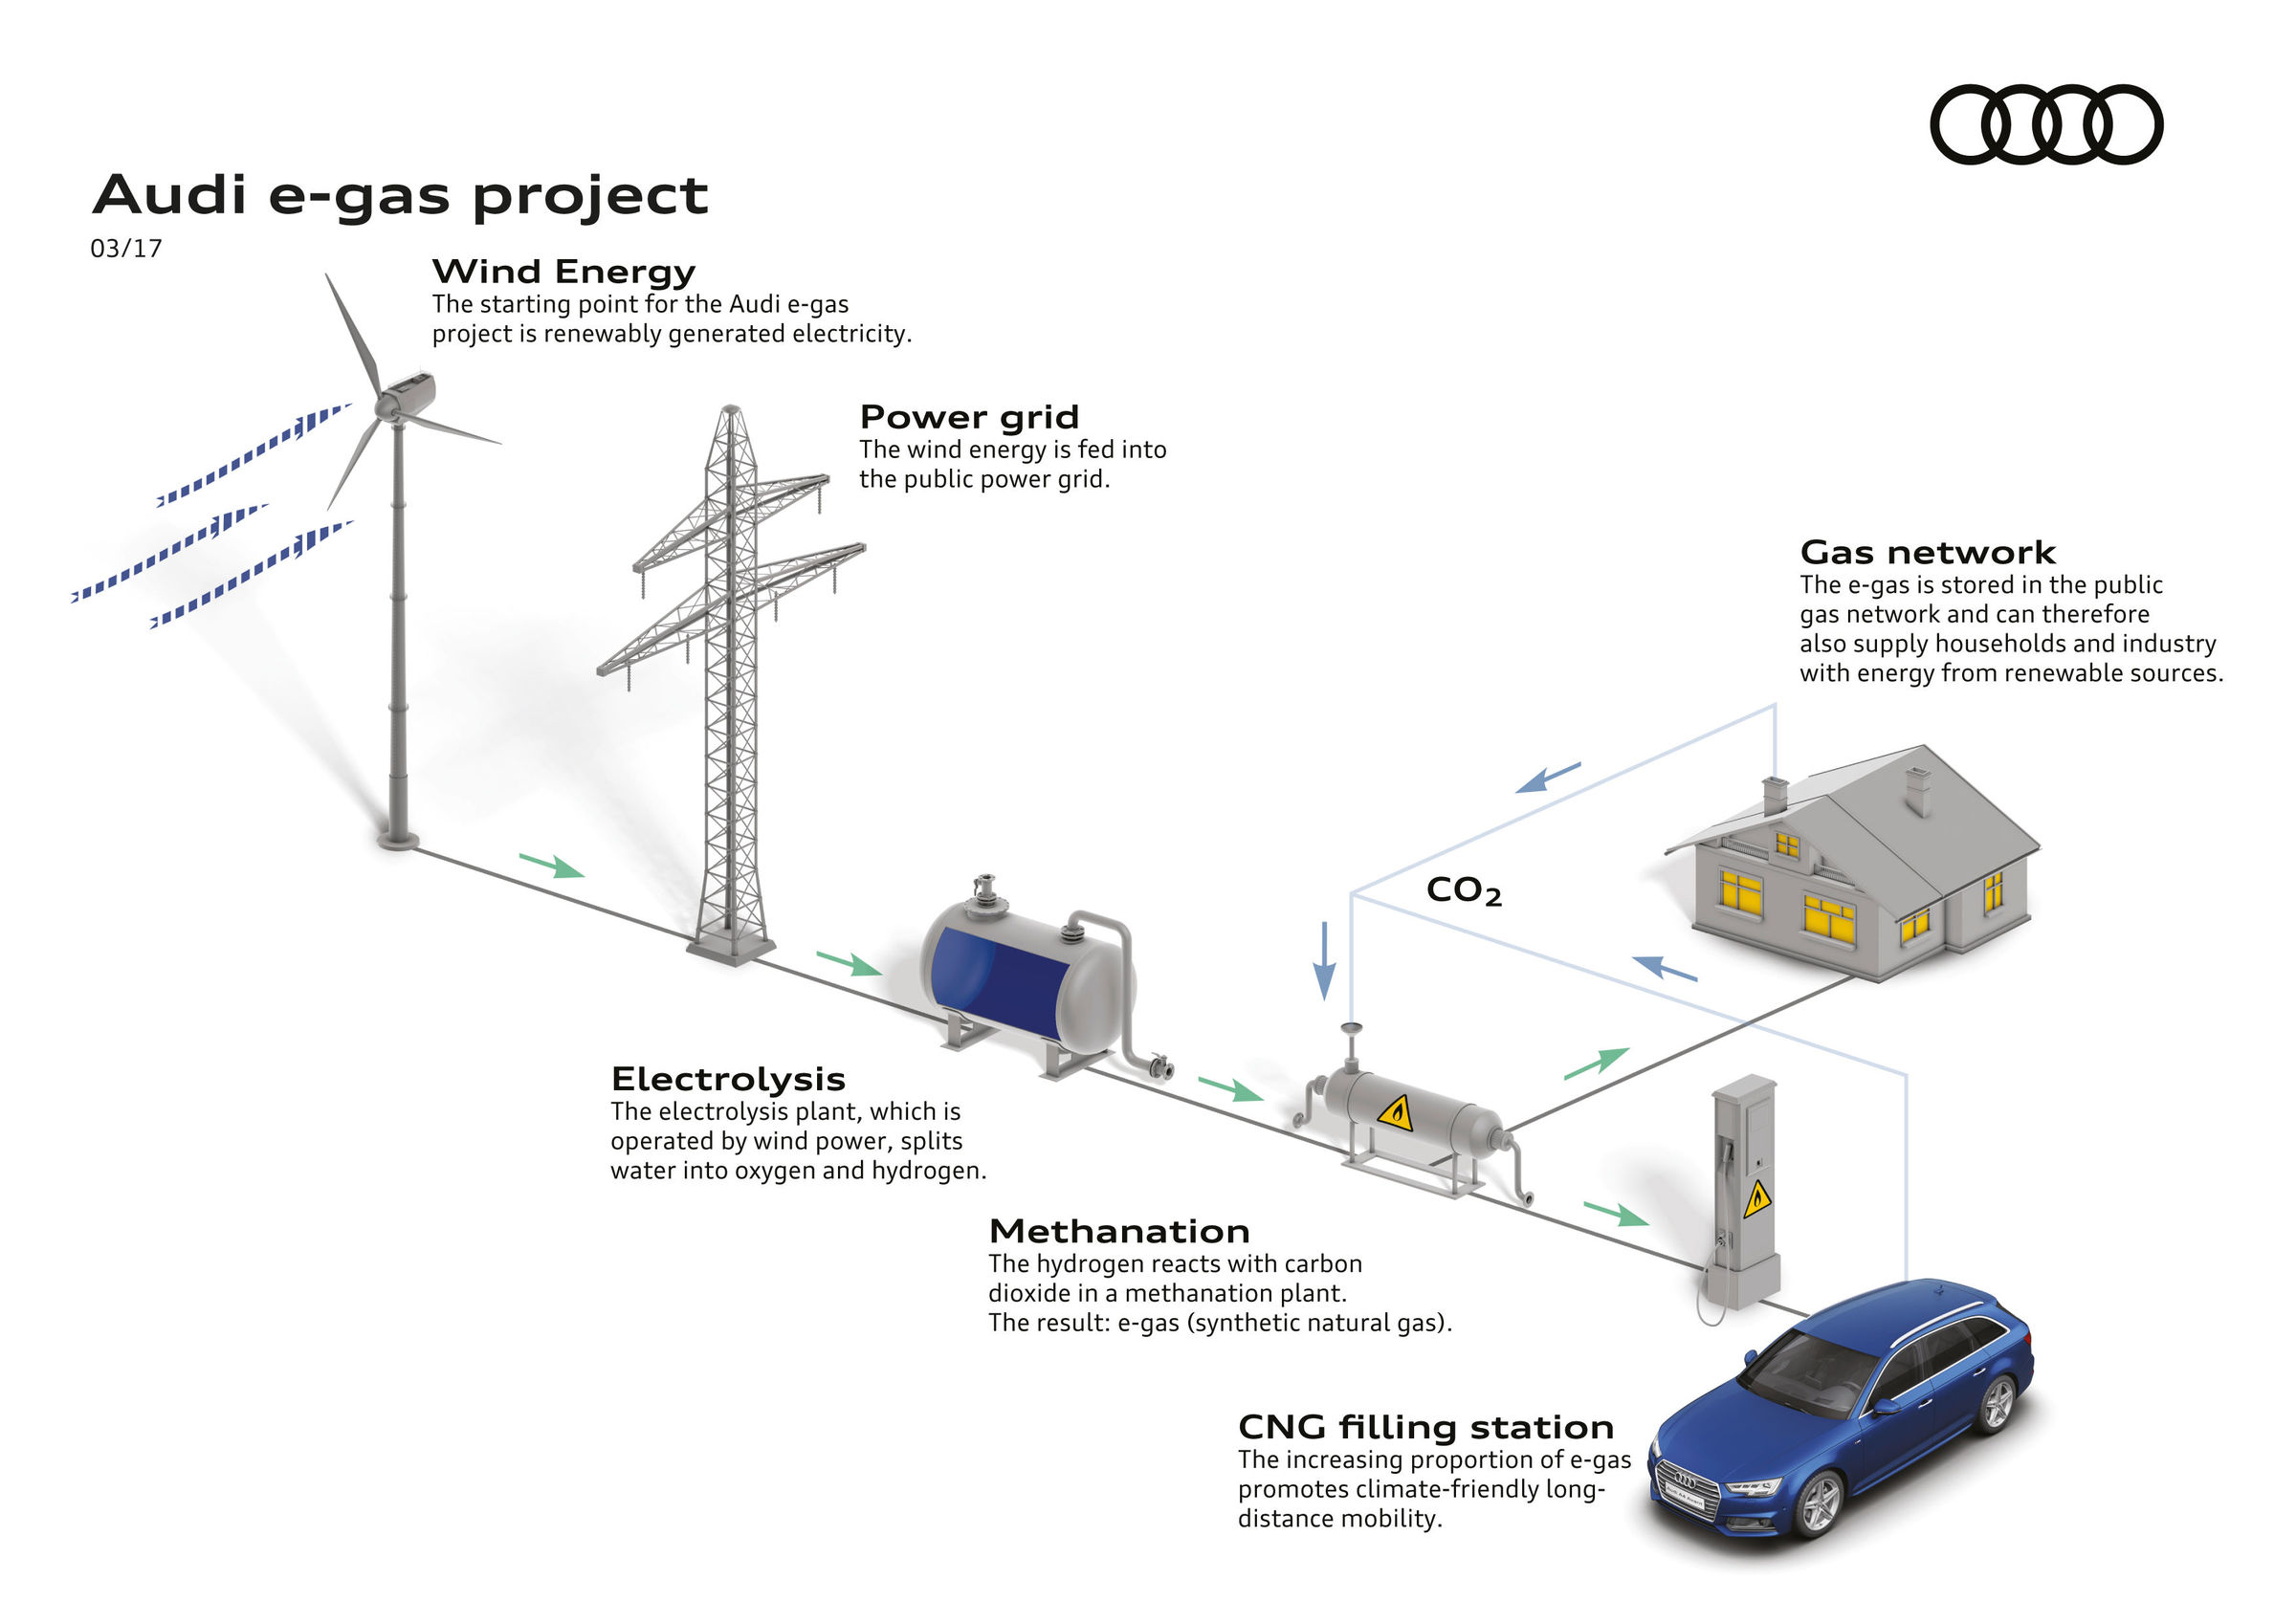 New Audi E Gas Offer As Standard 80 Percent Lower Co2 Emissions Further Hydrogen Oxygen Fuel Cell On Car Engine Diagram A4 Avant G Tron